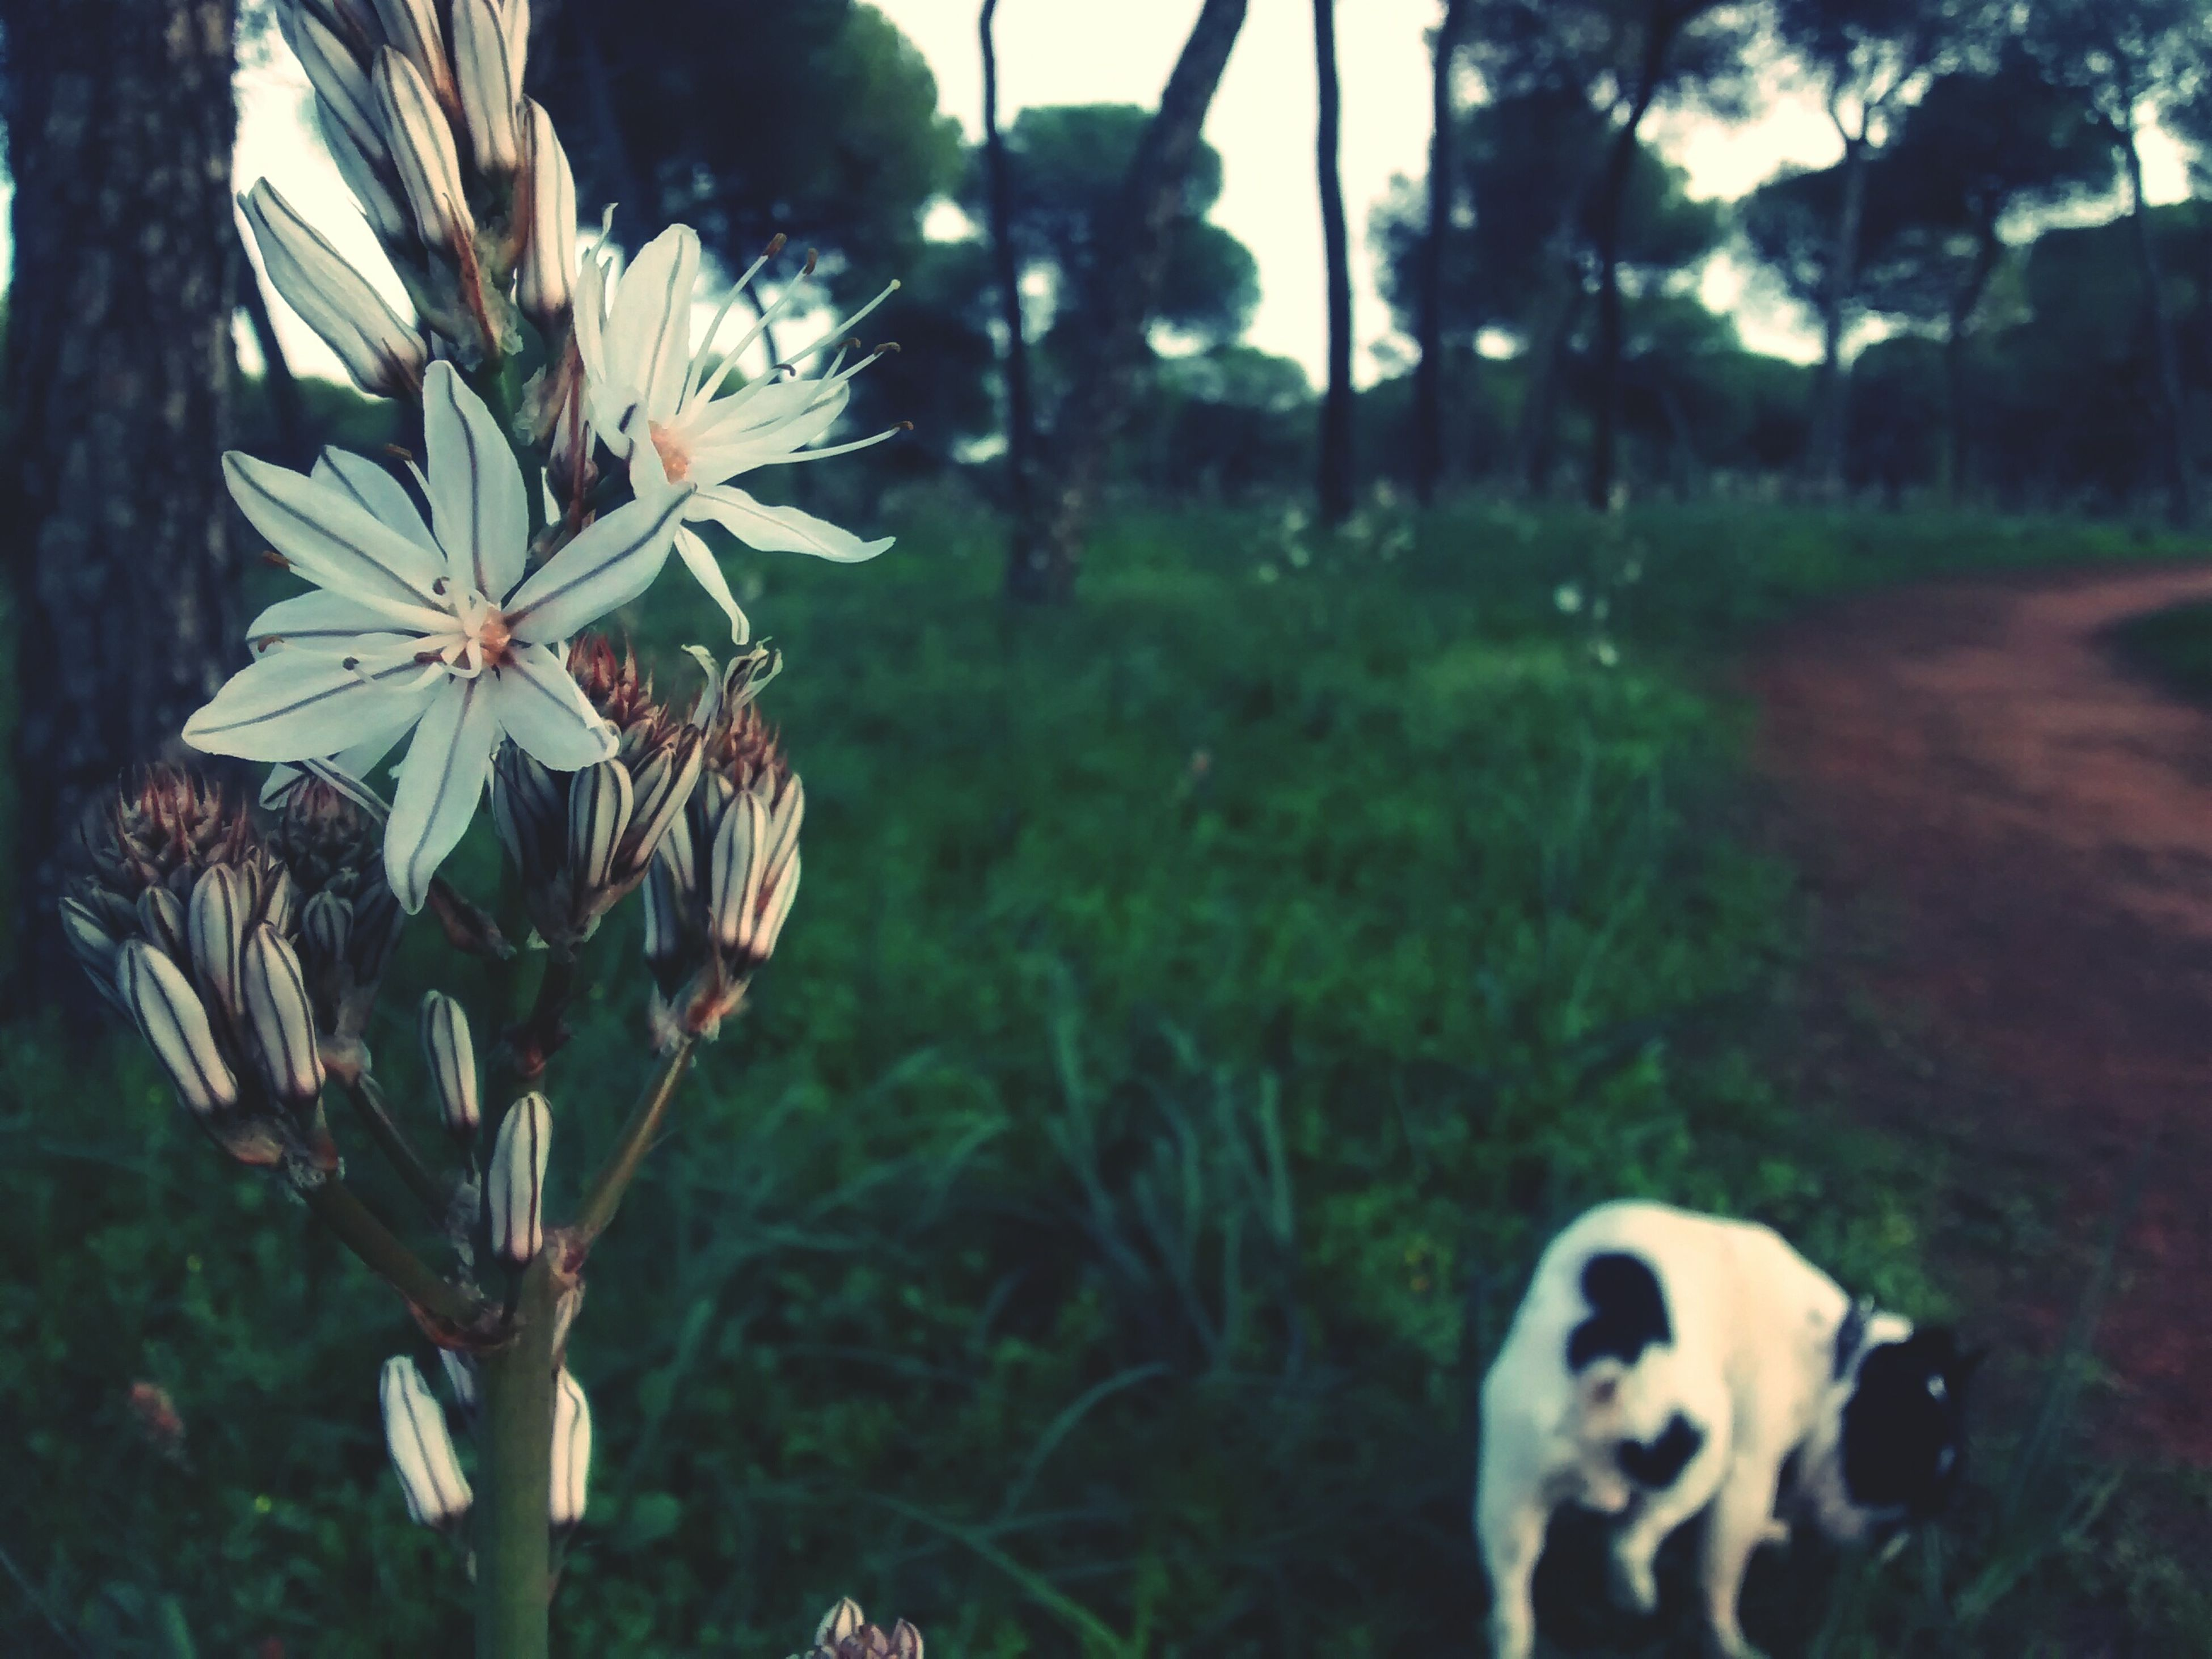 flower, one animal, animal themes, focus on foreground, growth, plant, white color, nature, domestic animals, close-up, pets, fragility, day, mammal, freshness, outdoors, beauty in nature, dog, field, sunlight